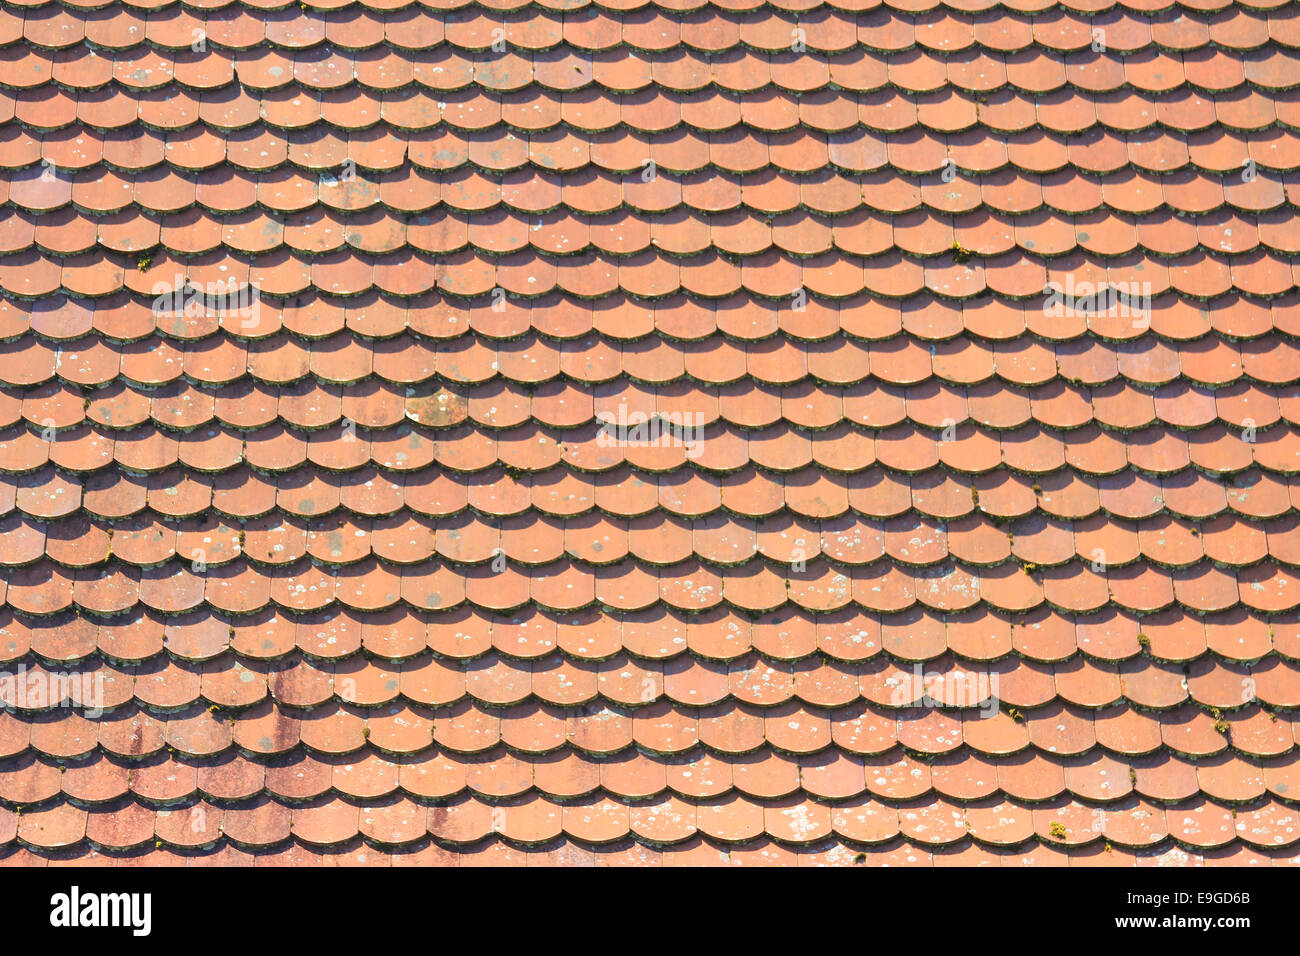 Roof with red tiles Stock Photo